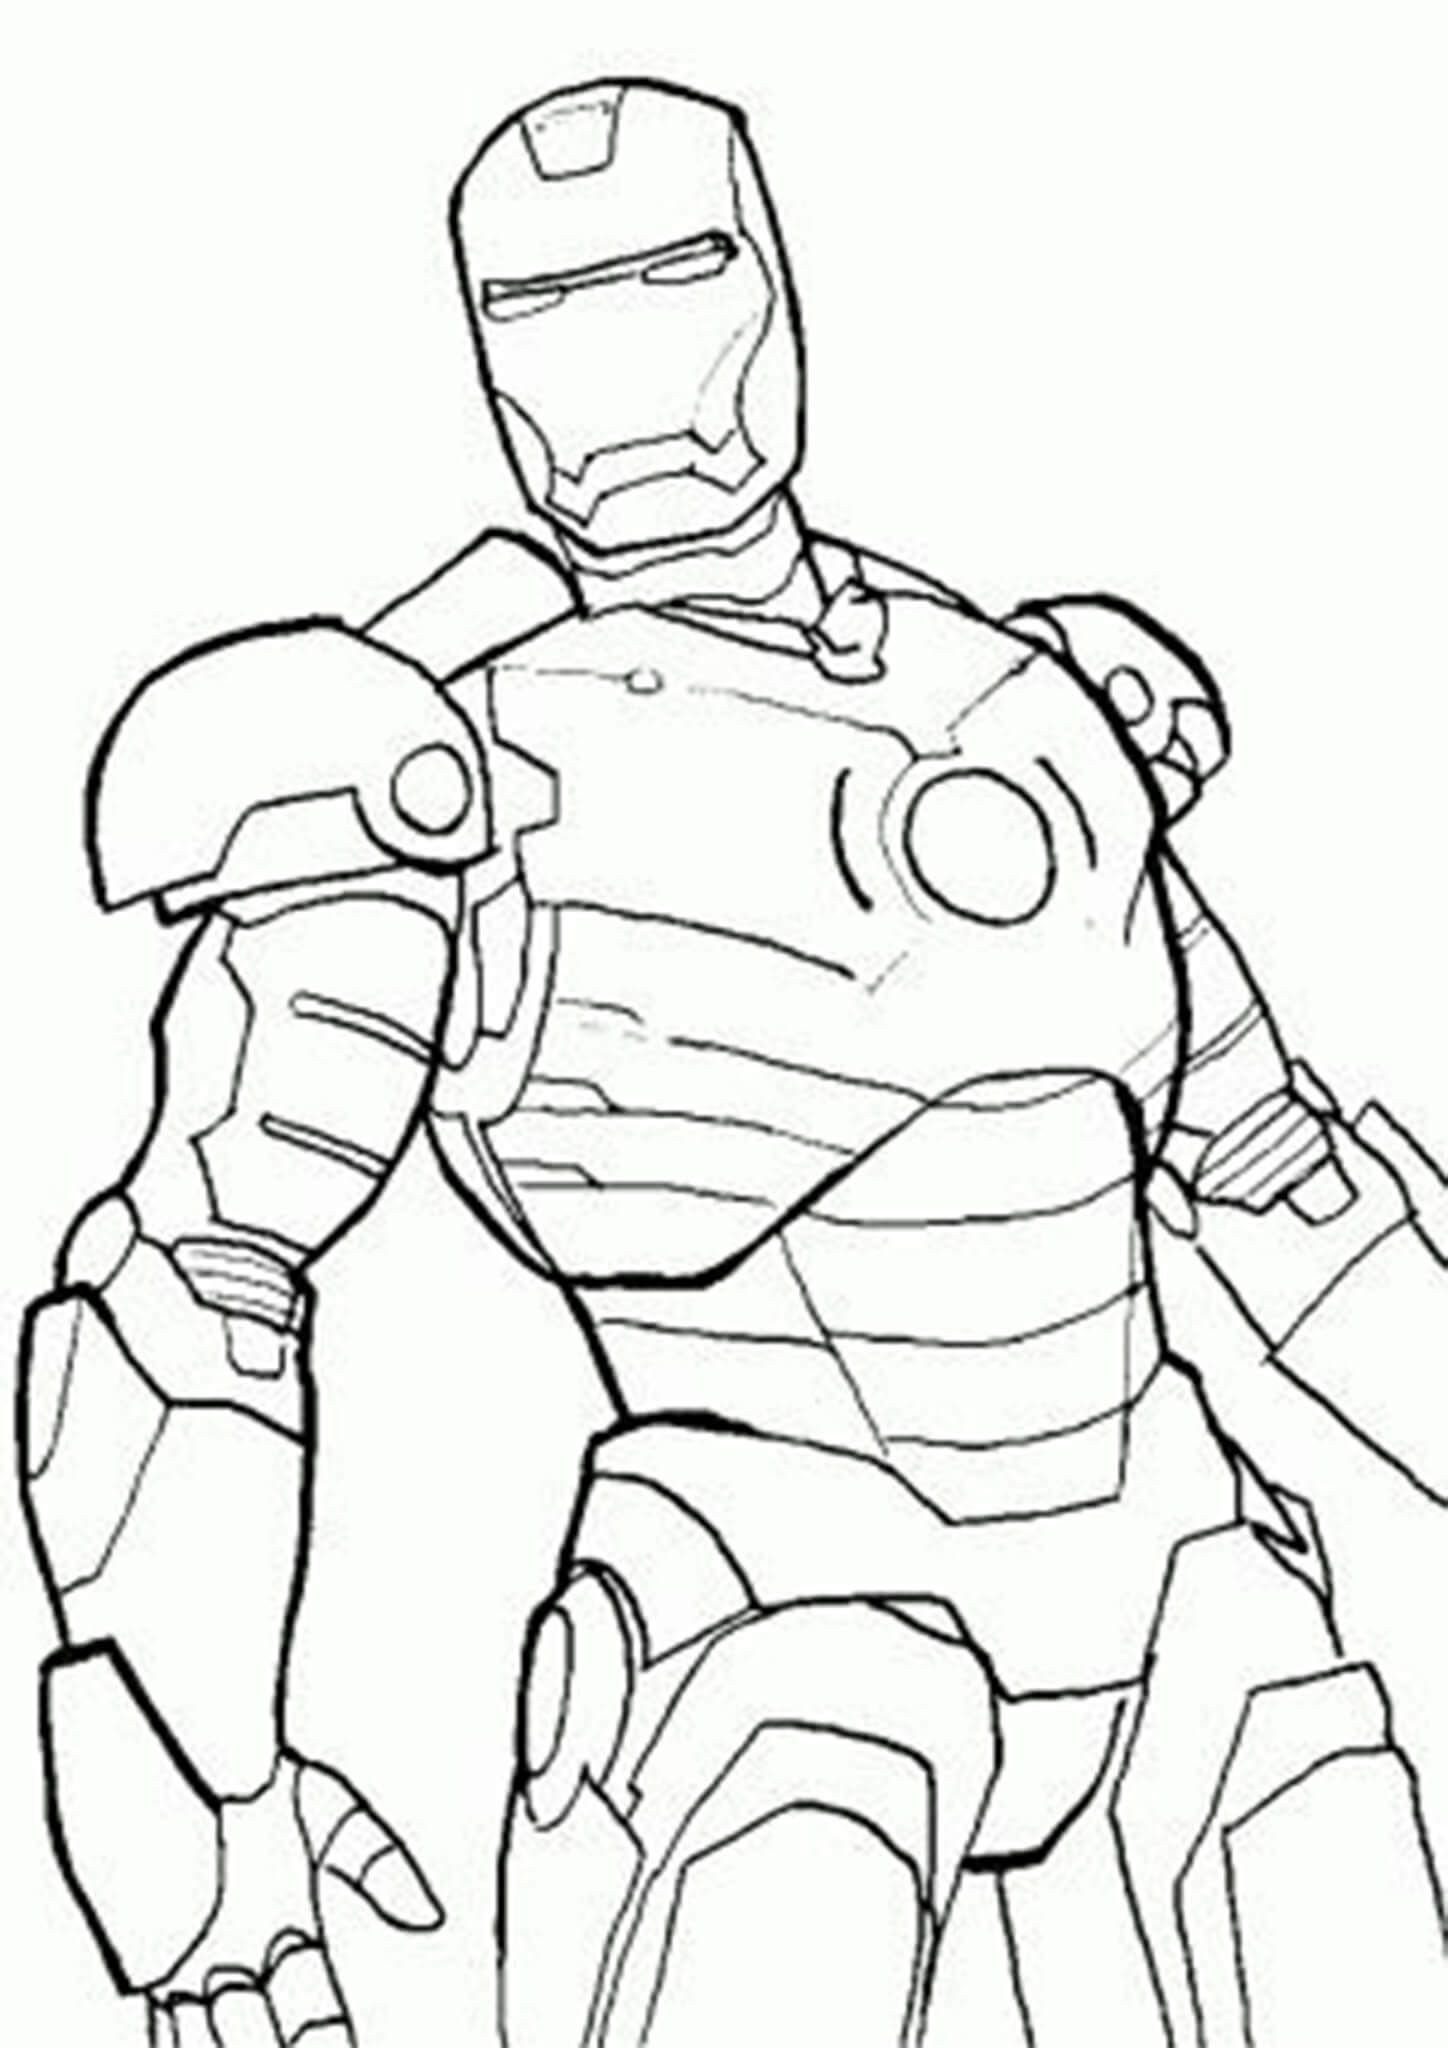 Free Easy To Print Iron Man Coloring Pages In 2020 Iron Man Drawing Iron Man Art Avengers Coloring Pages